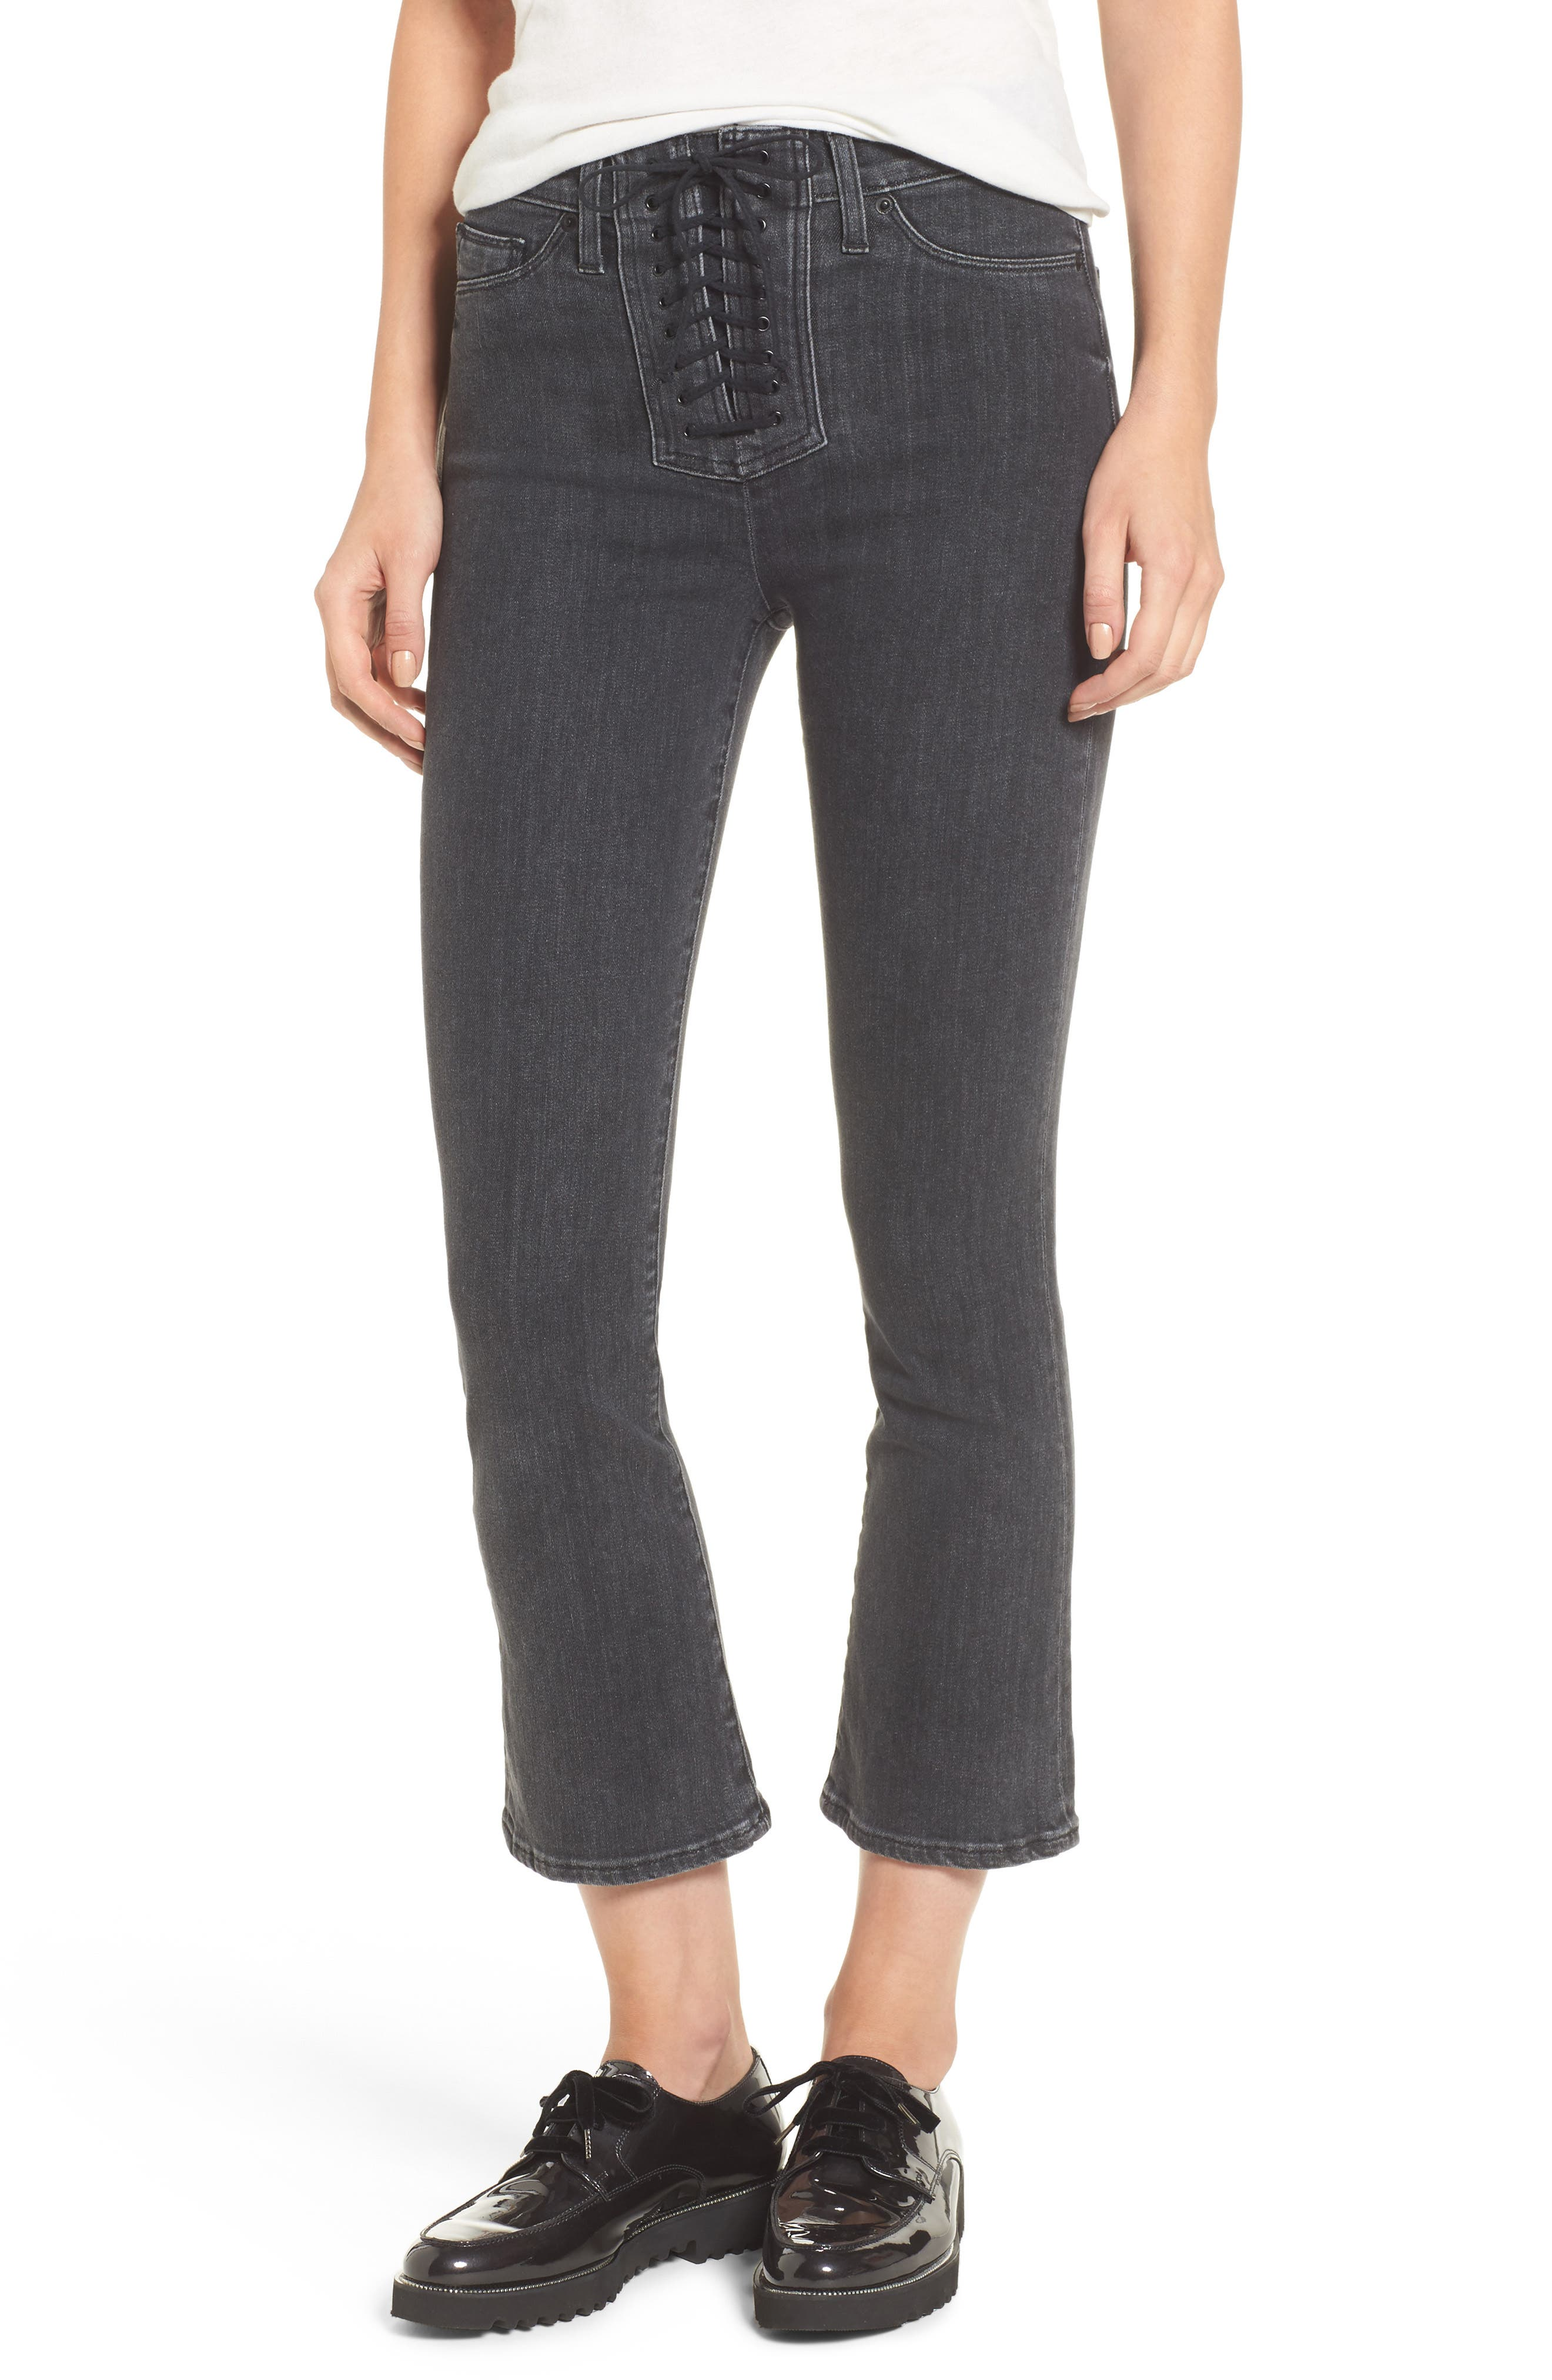 Main Image - Hudson Jeans Bullocks High Waist Lace-Up Crop Jeans (Disarm)